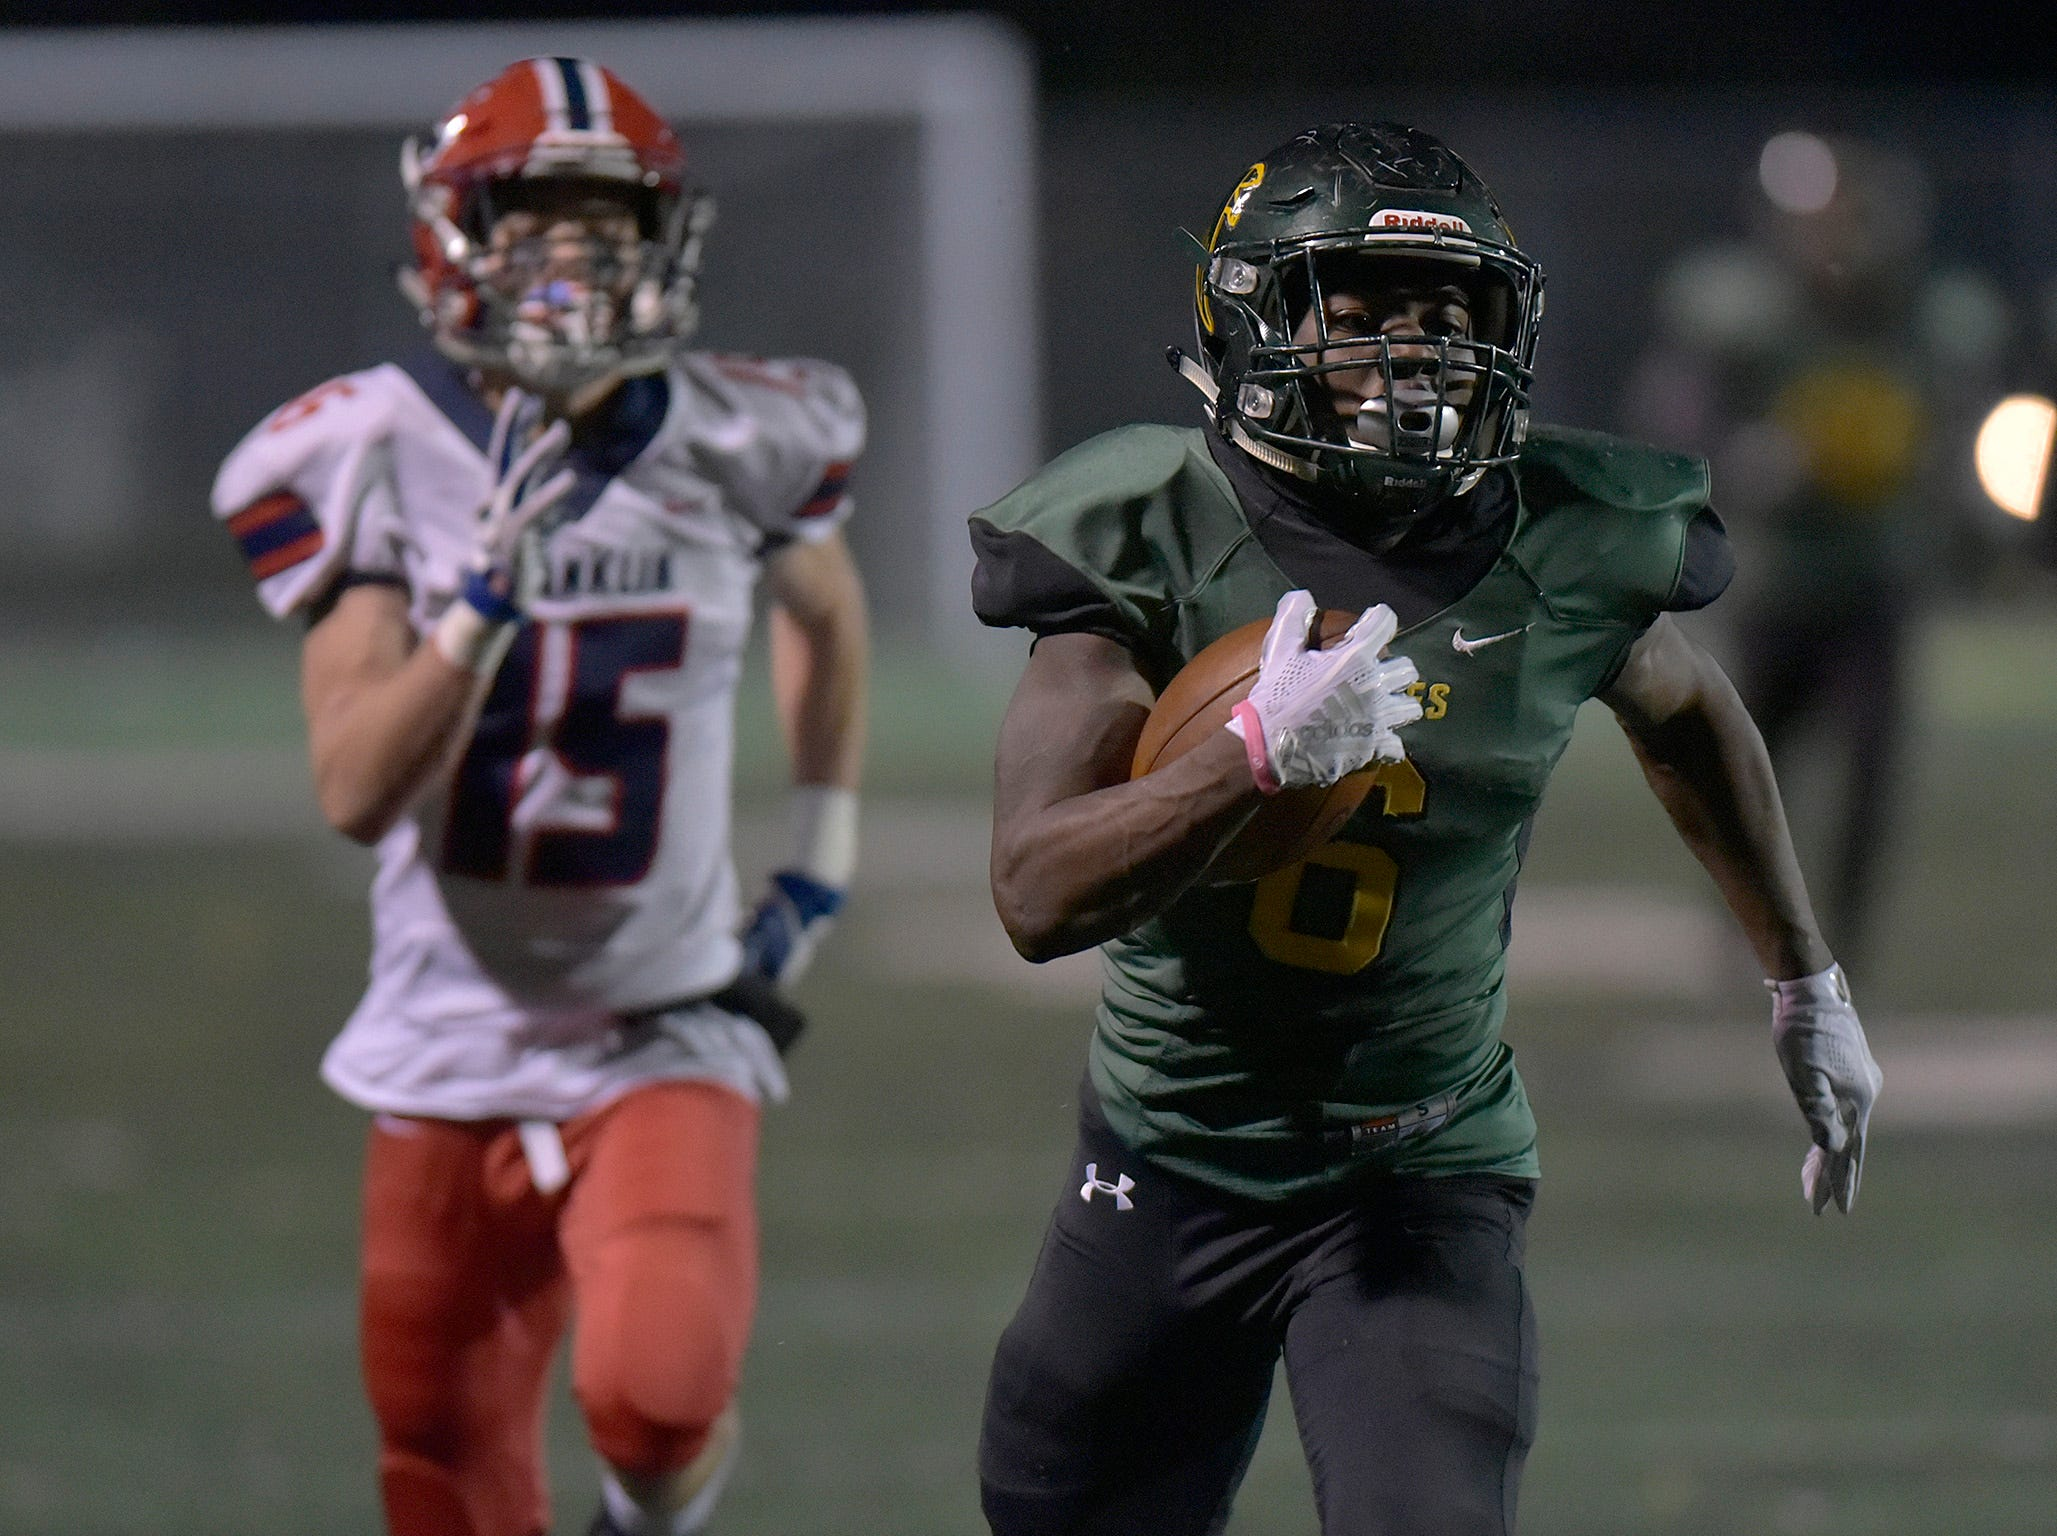 Birmingham Groves RB/FS Damonte McCurdy (6) gains yards, followed by Livonia Franklin's DB/SL Kyle Hetu.